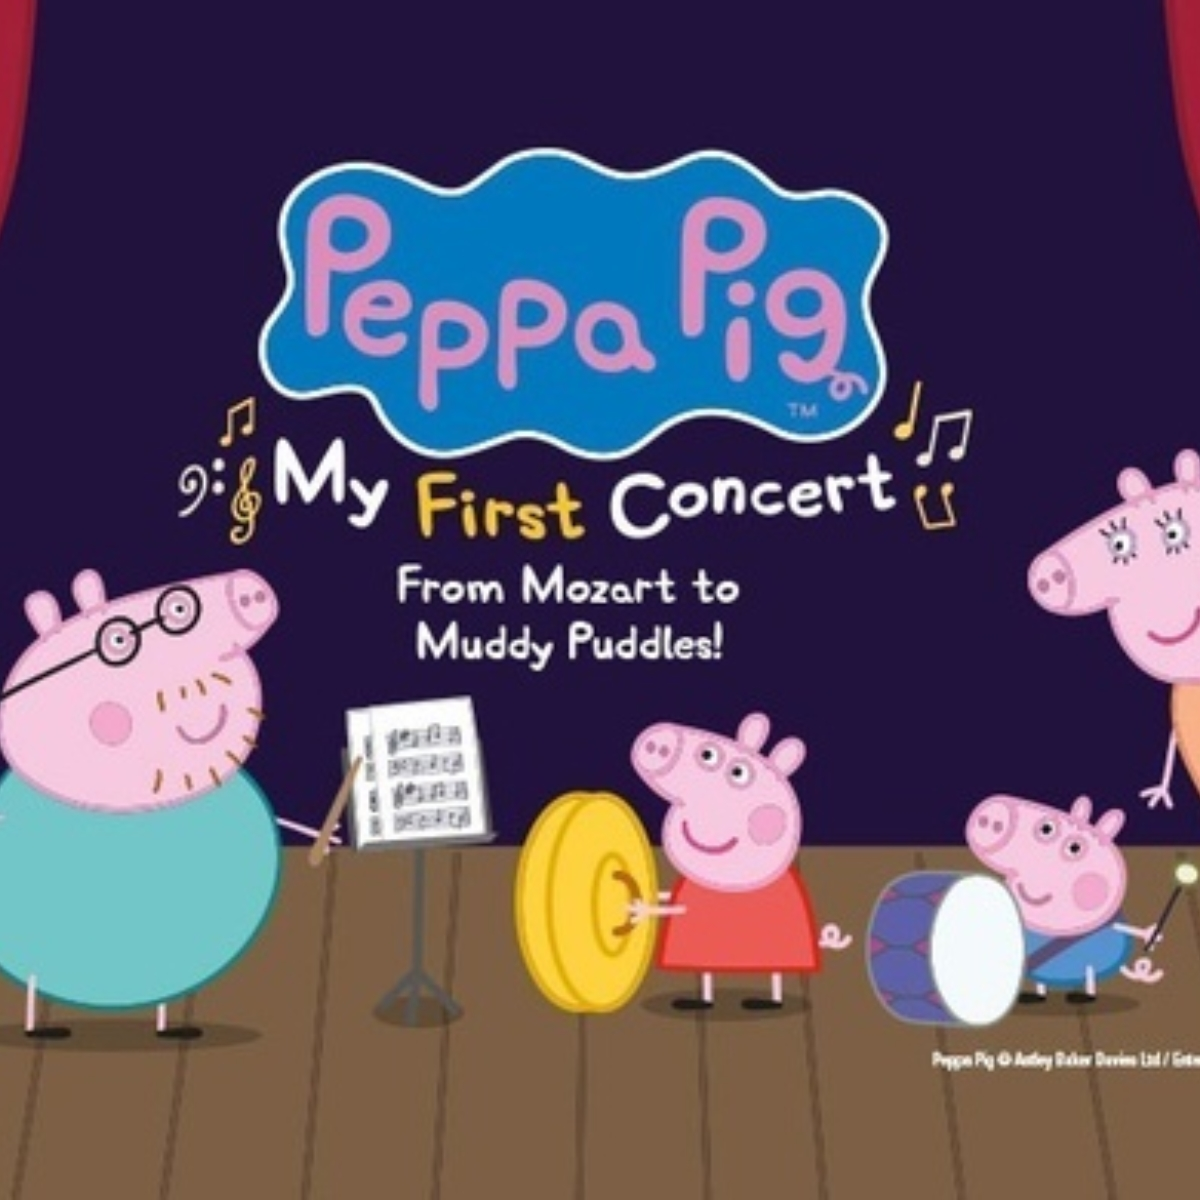 Peppa Pig: My First Concert 2020 Images